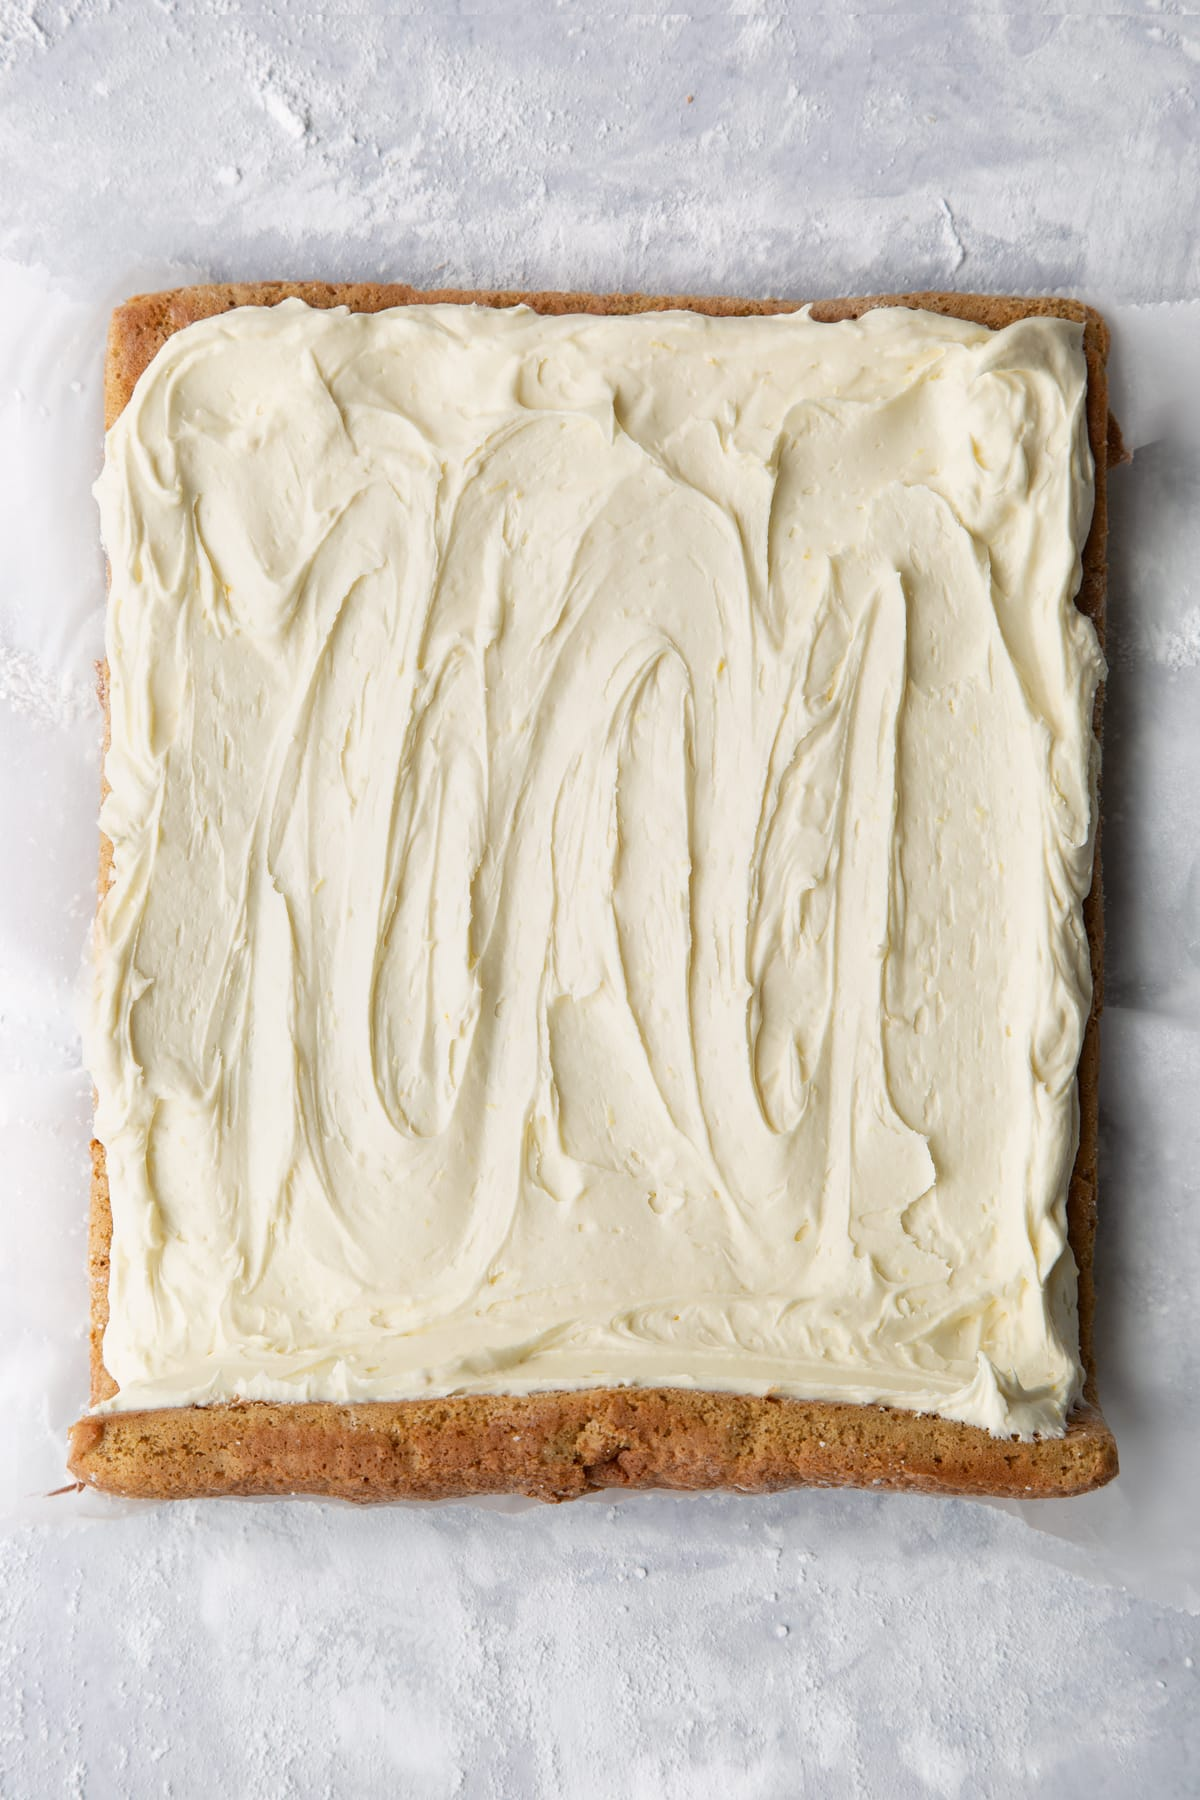 Gingerbread Swiss roll sponge unrolled and spread with lemon white chocolate buttercream.